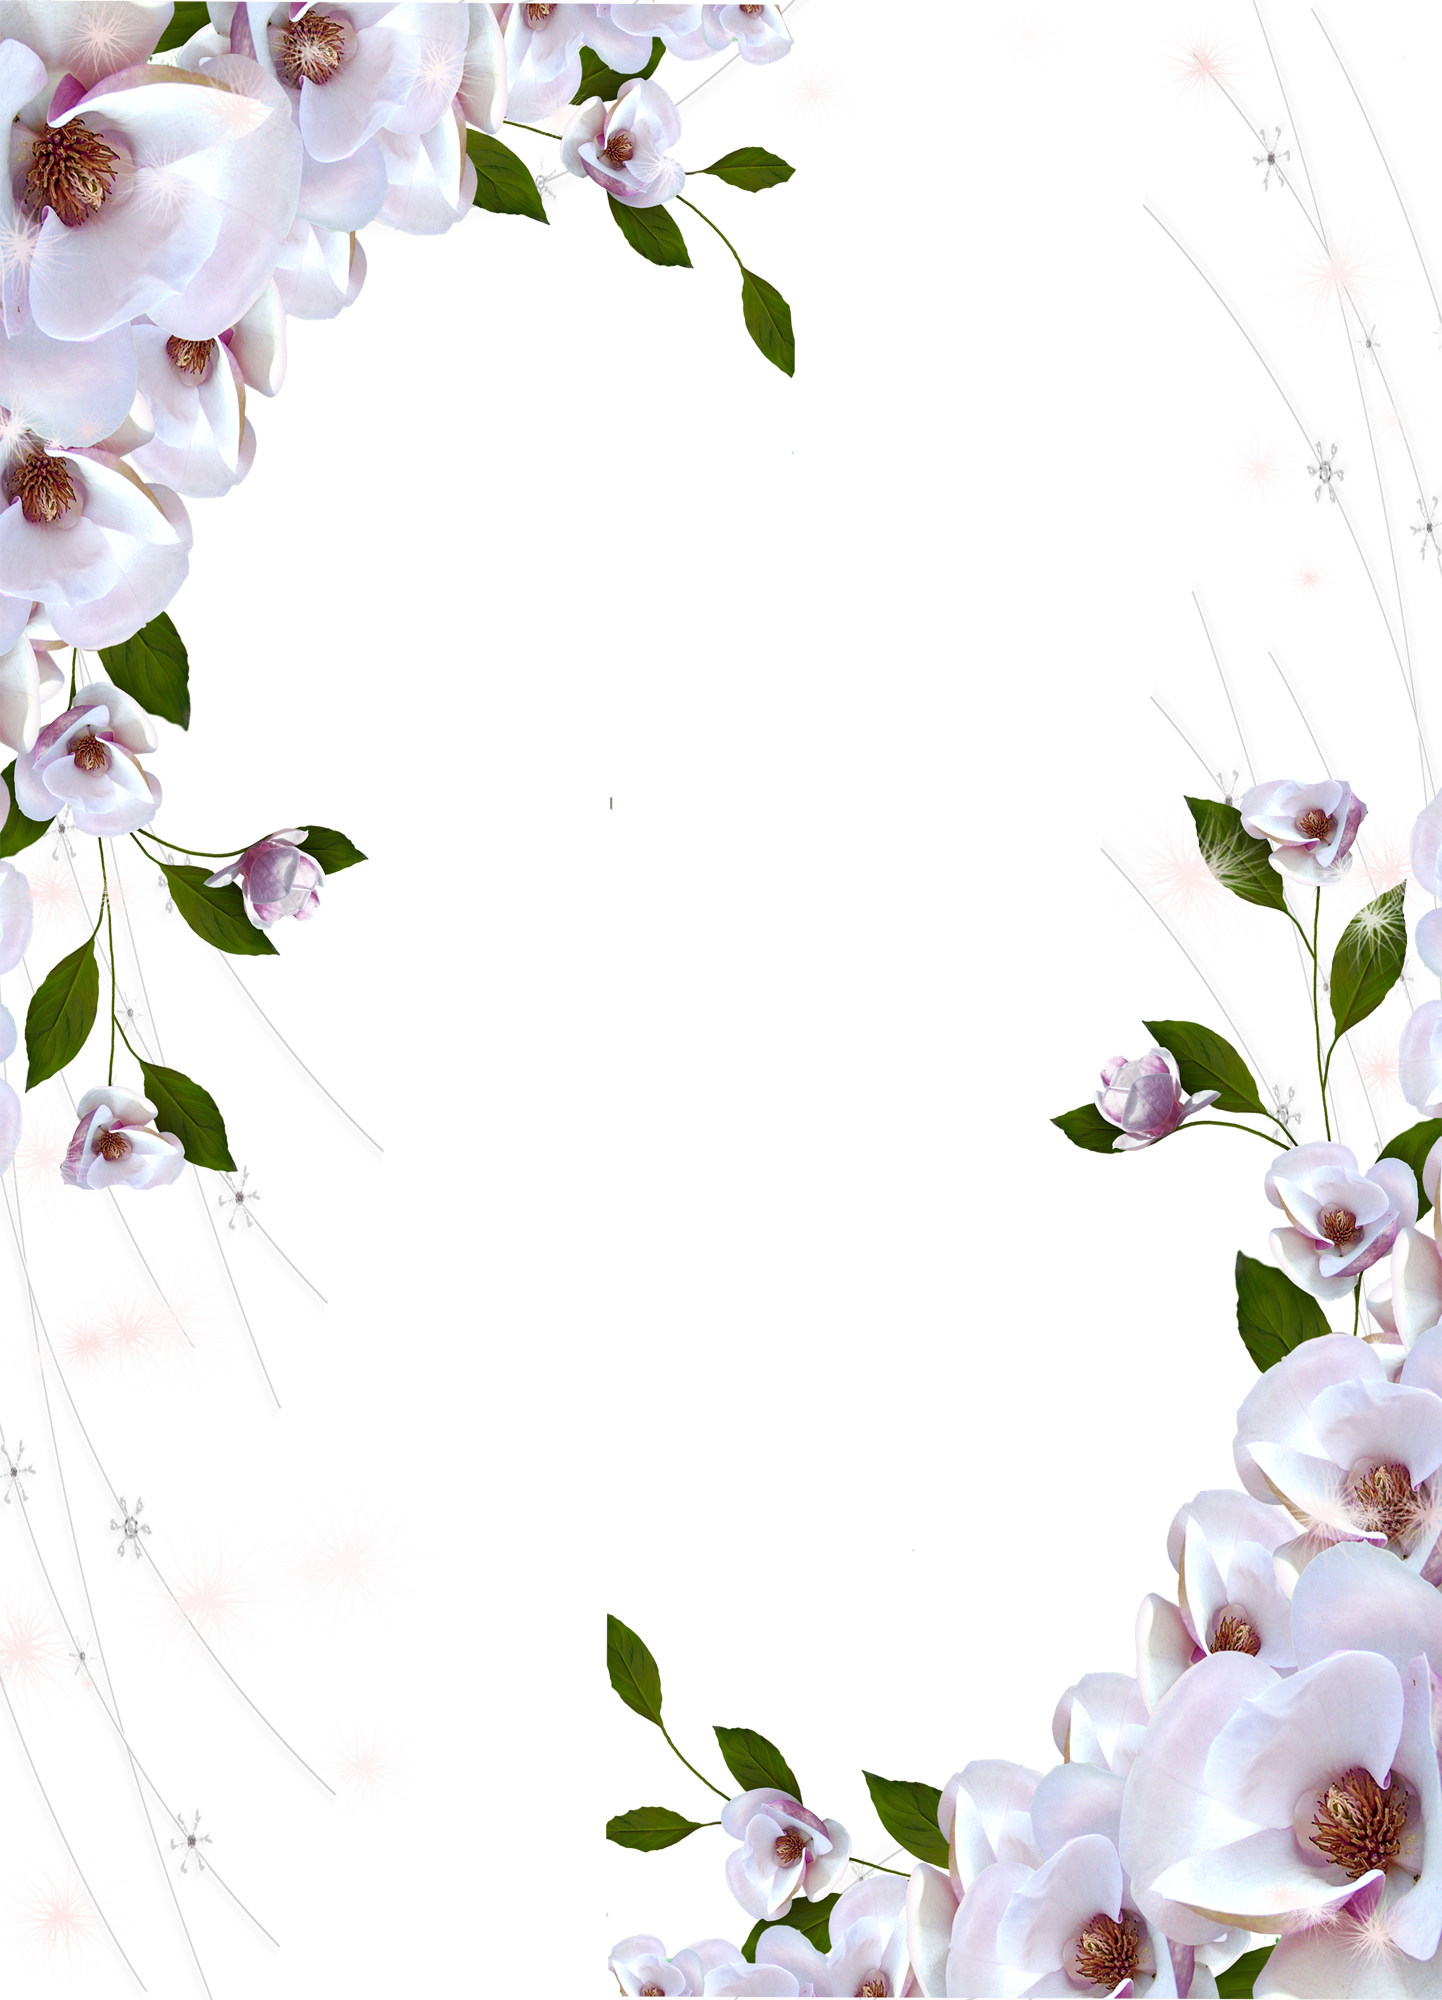 HD Transparent Photo Frame Beautiful Flowers.